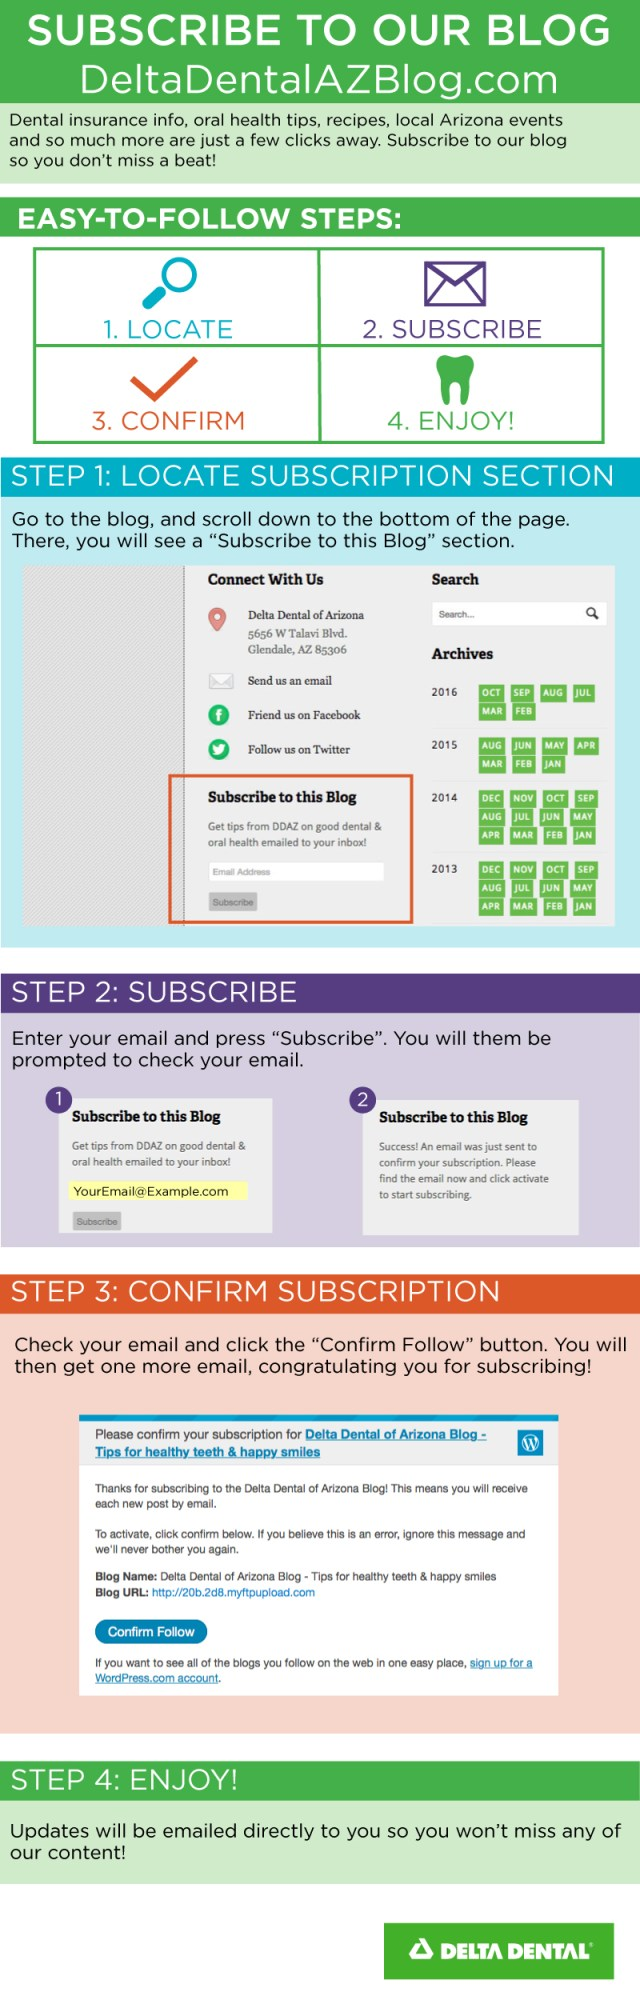 Blog Subscription Infographic